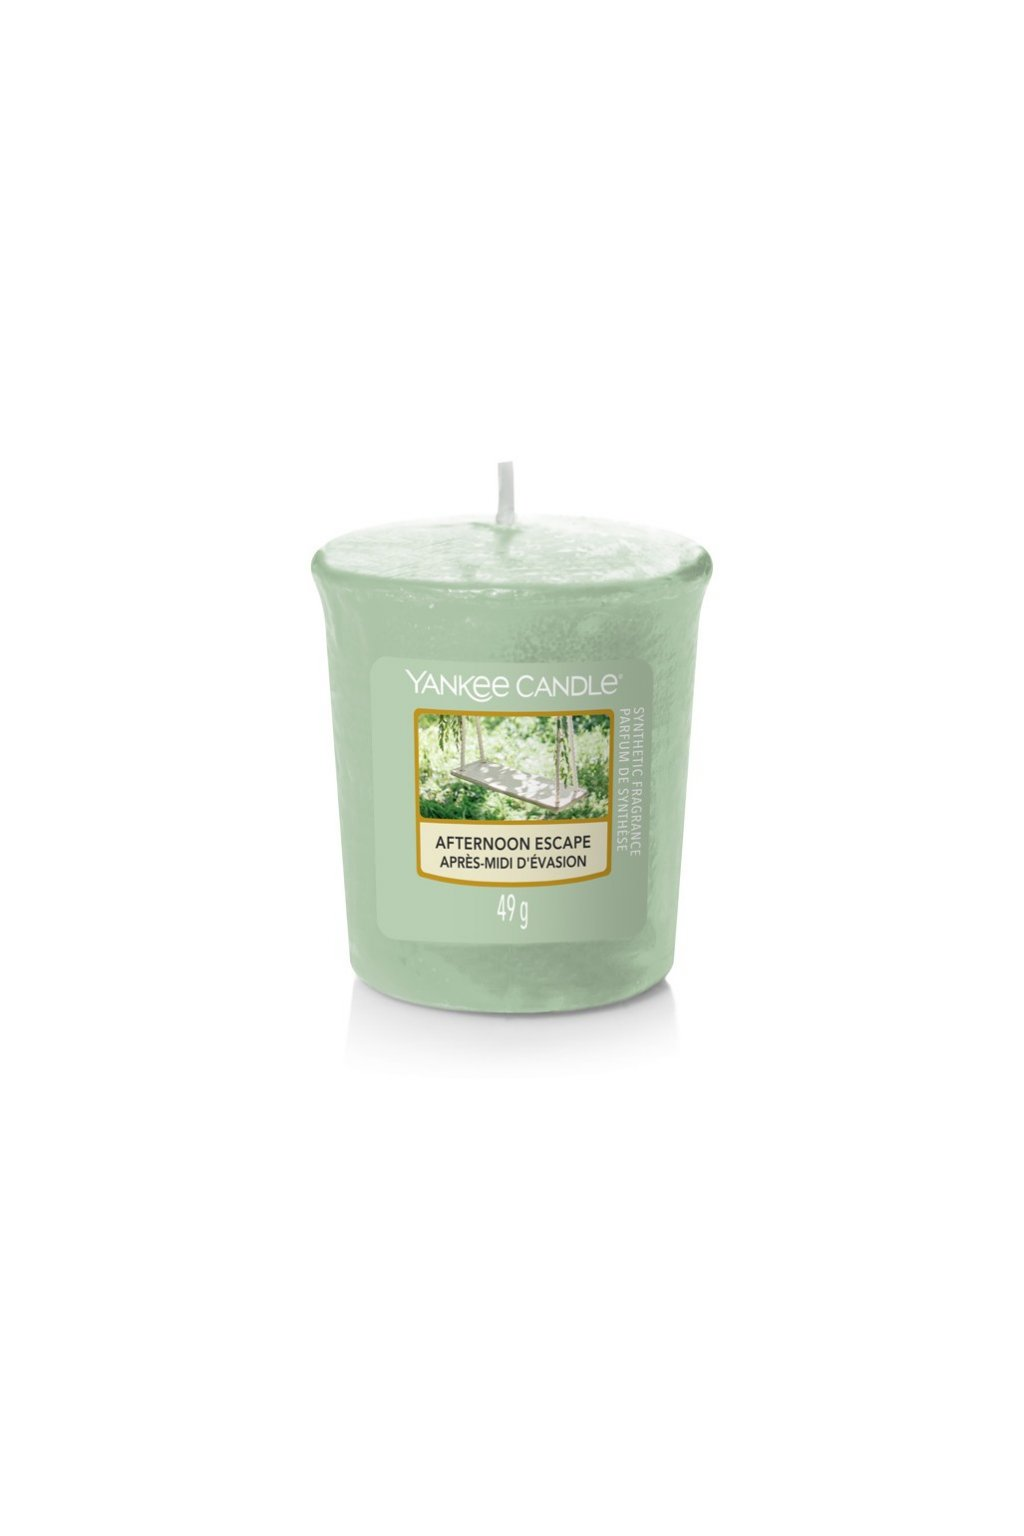 Yankee Candle Afternoon Escape 49g